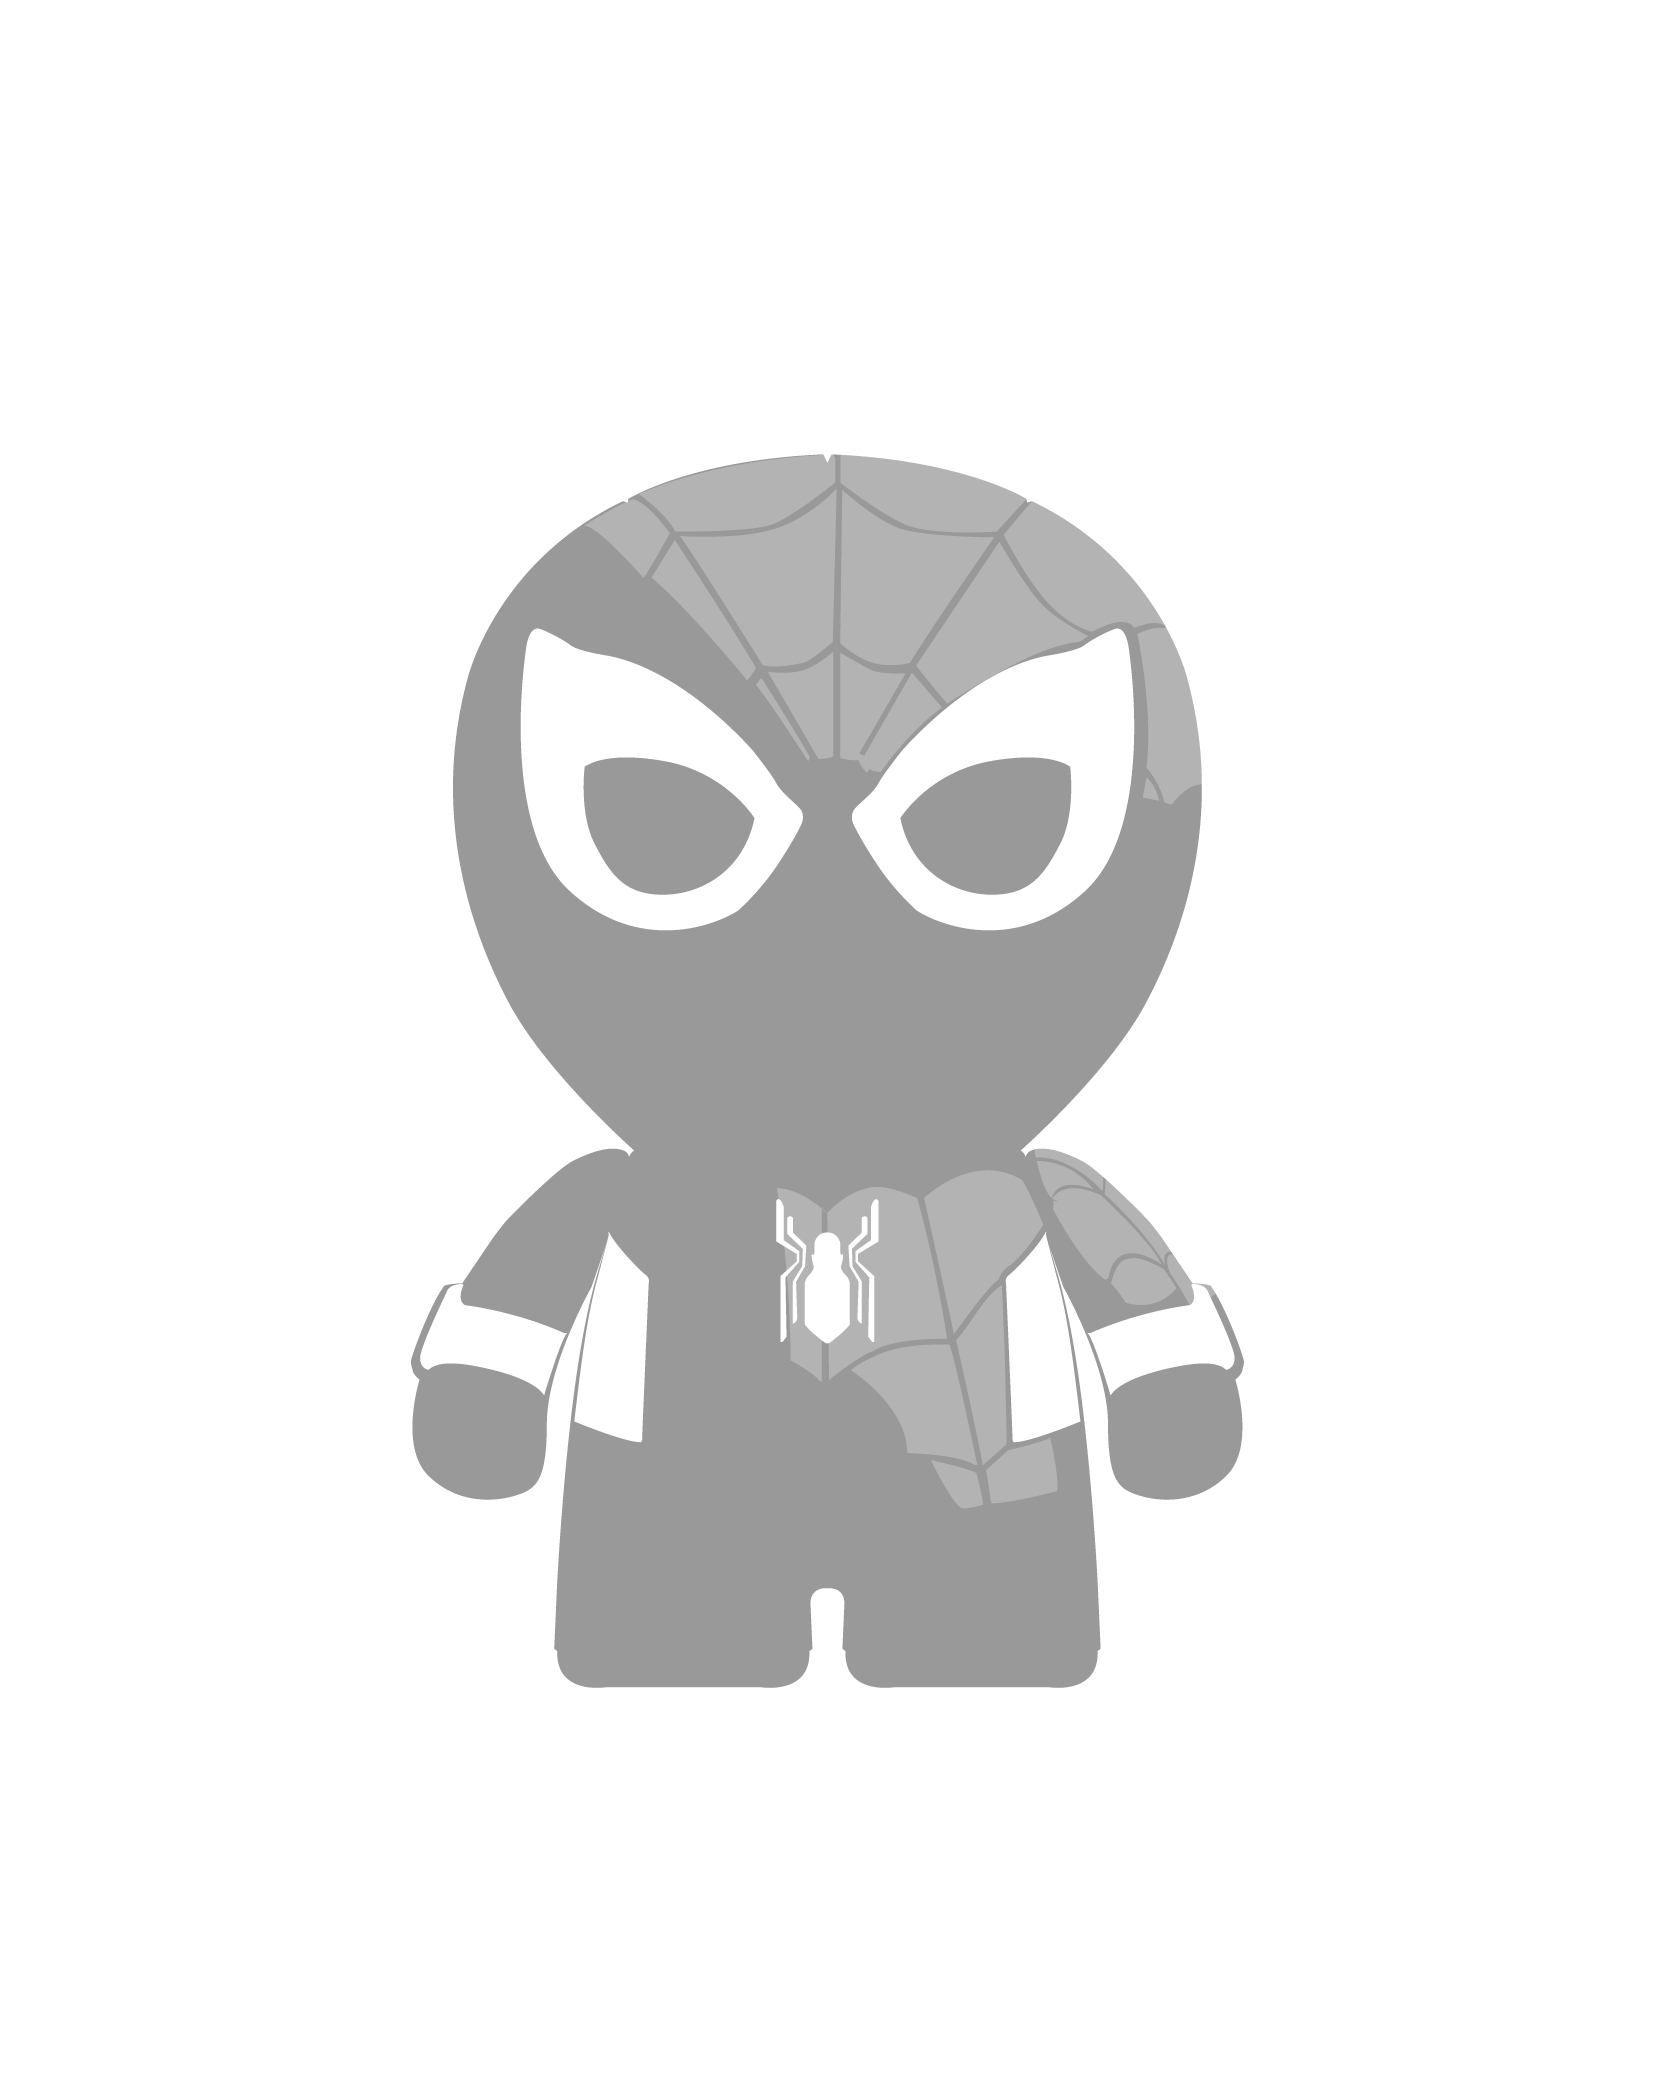 Spider-Man - Sphero Support and Knowledge Base